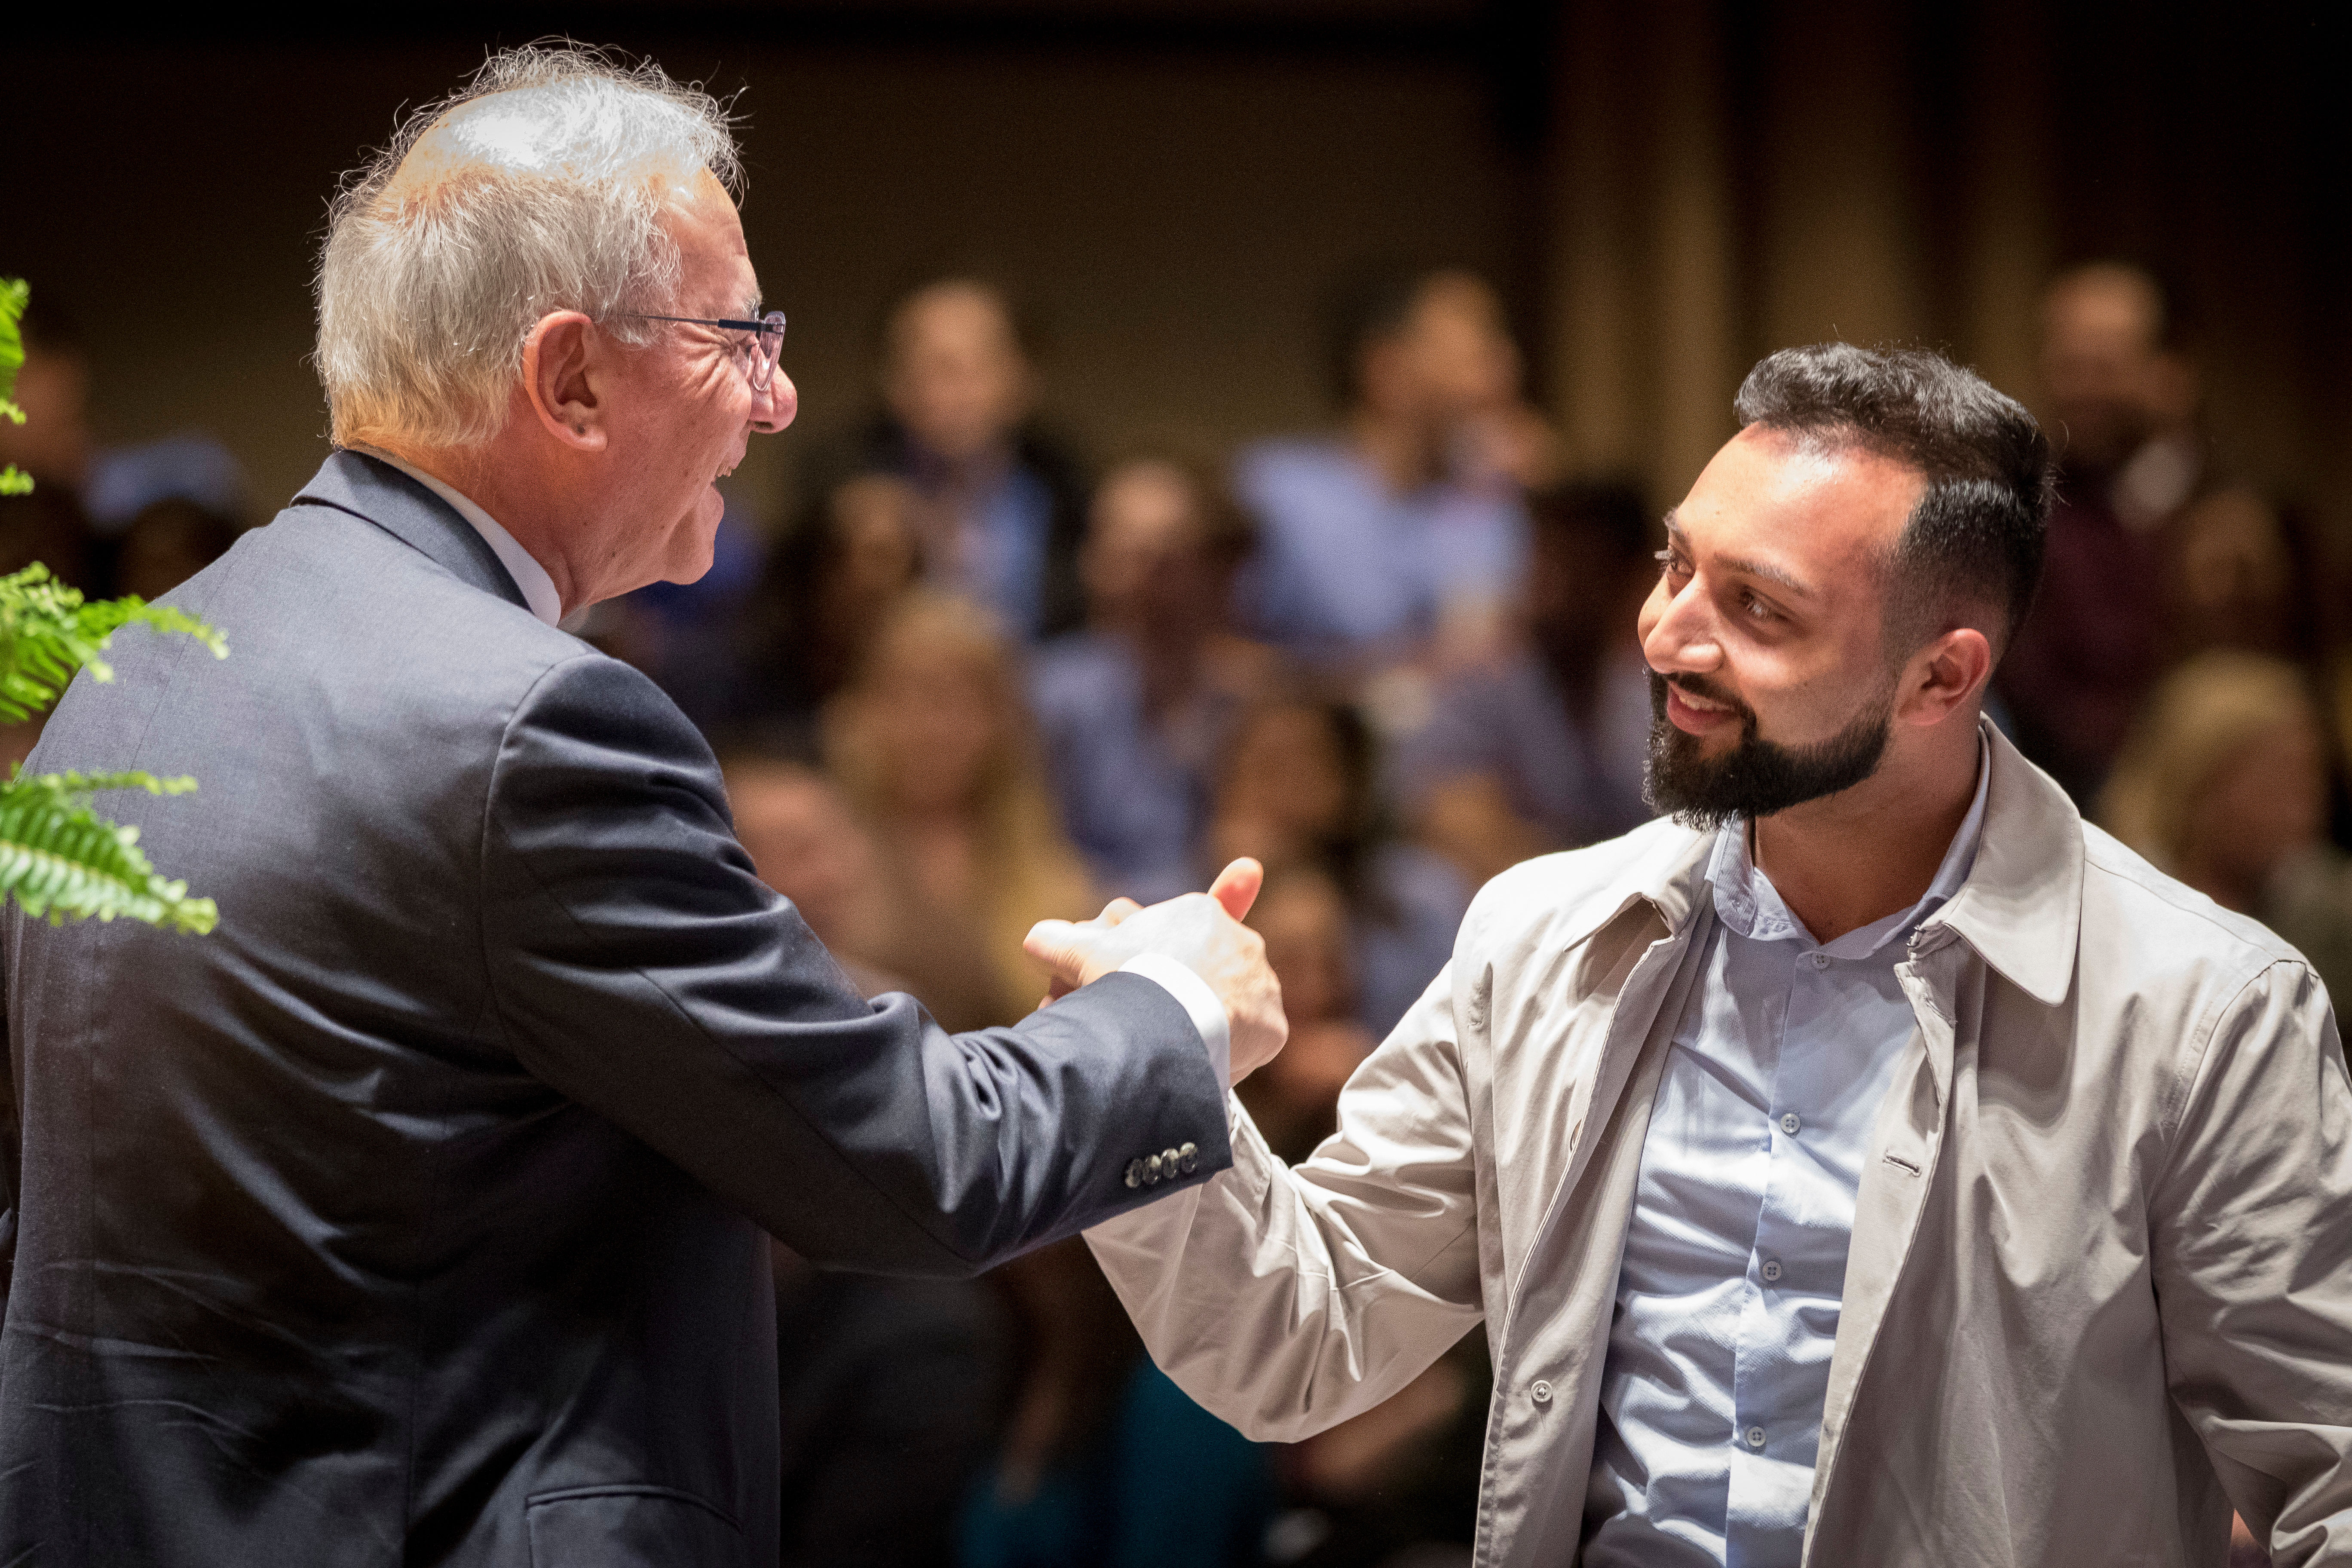 Kornberg Dean Amid Ismail greets a guest during a Research Day event.